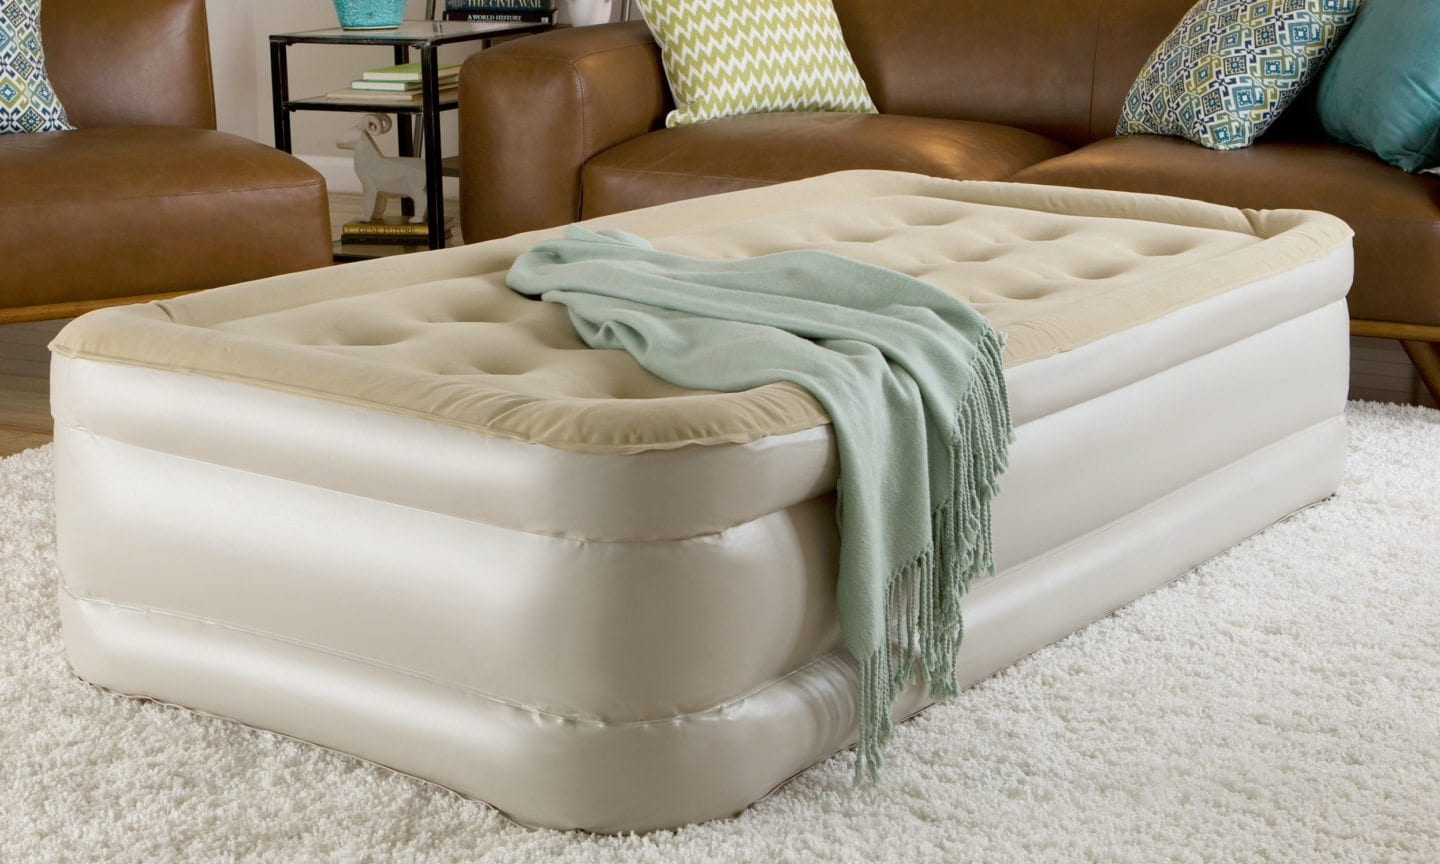 5 Tips to Get the Most out of Your Air Mattress